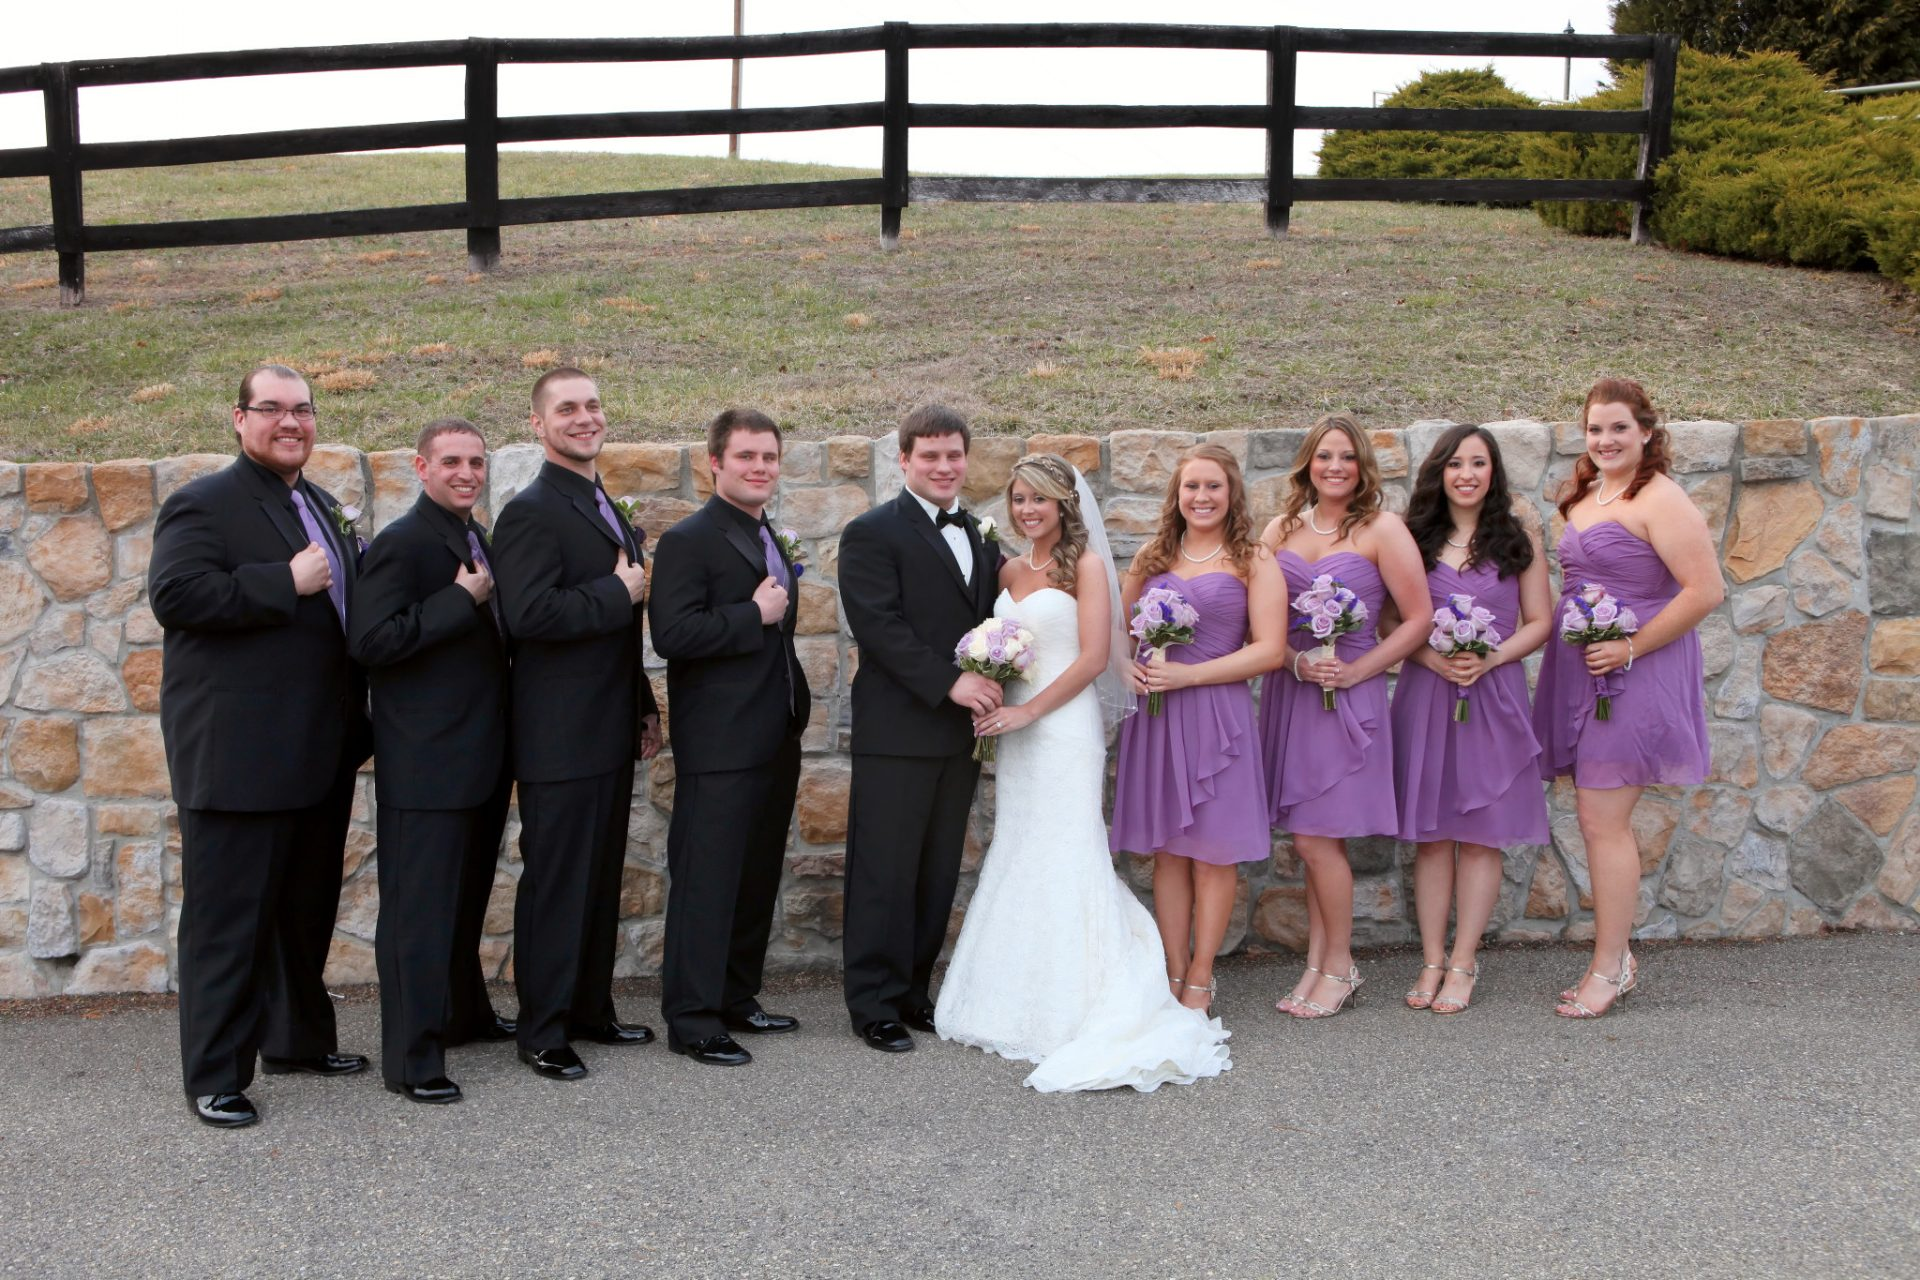 Wedding party pose in front of stone wall